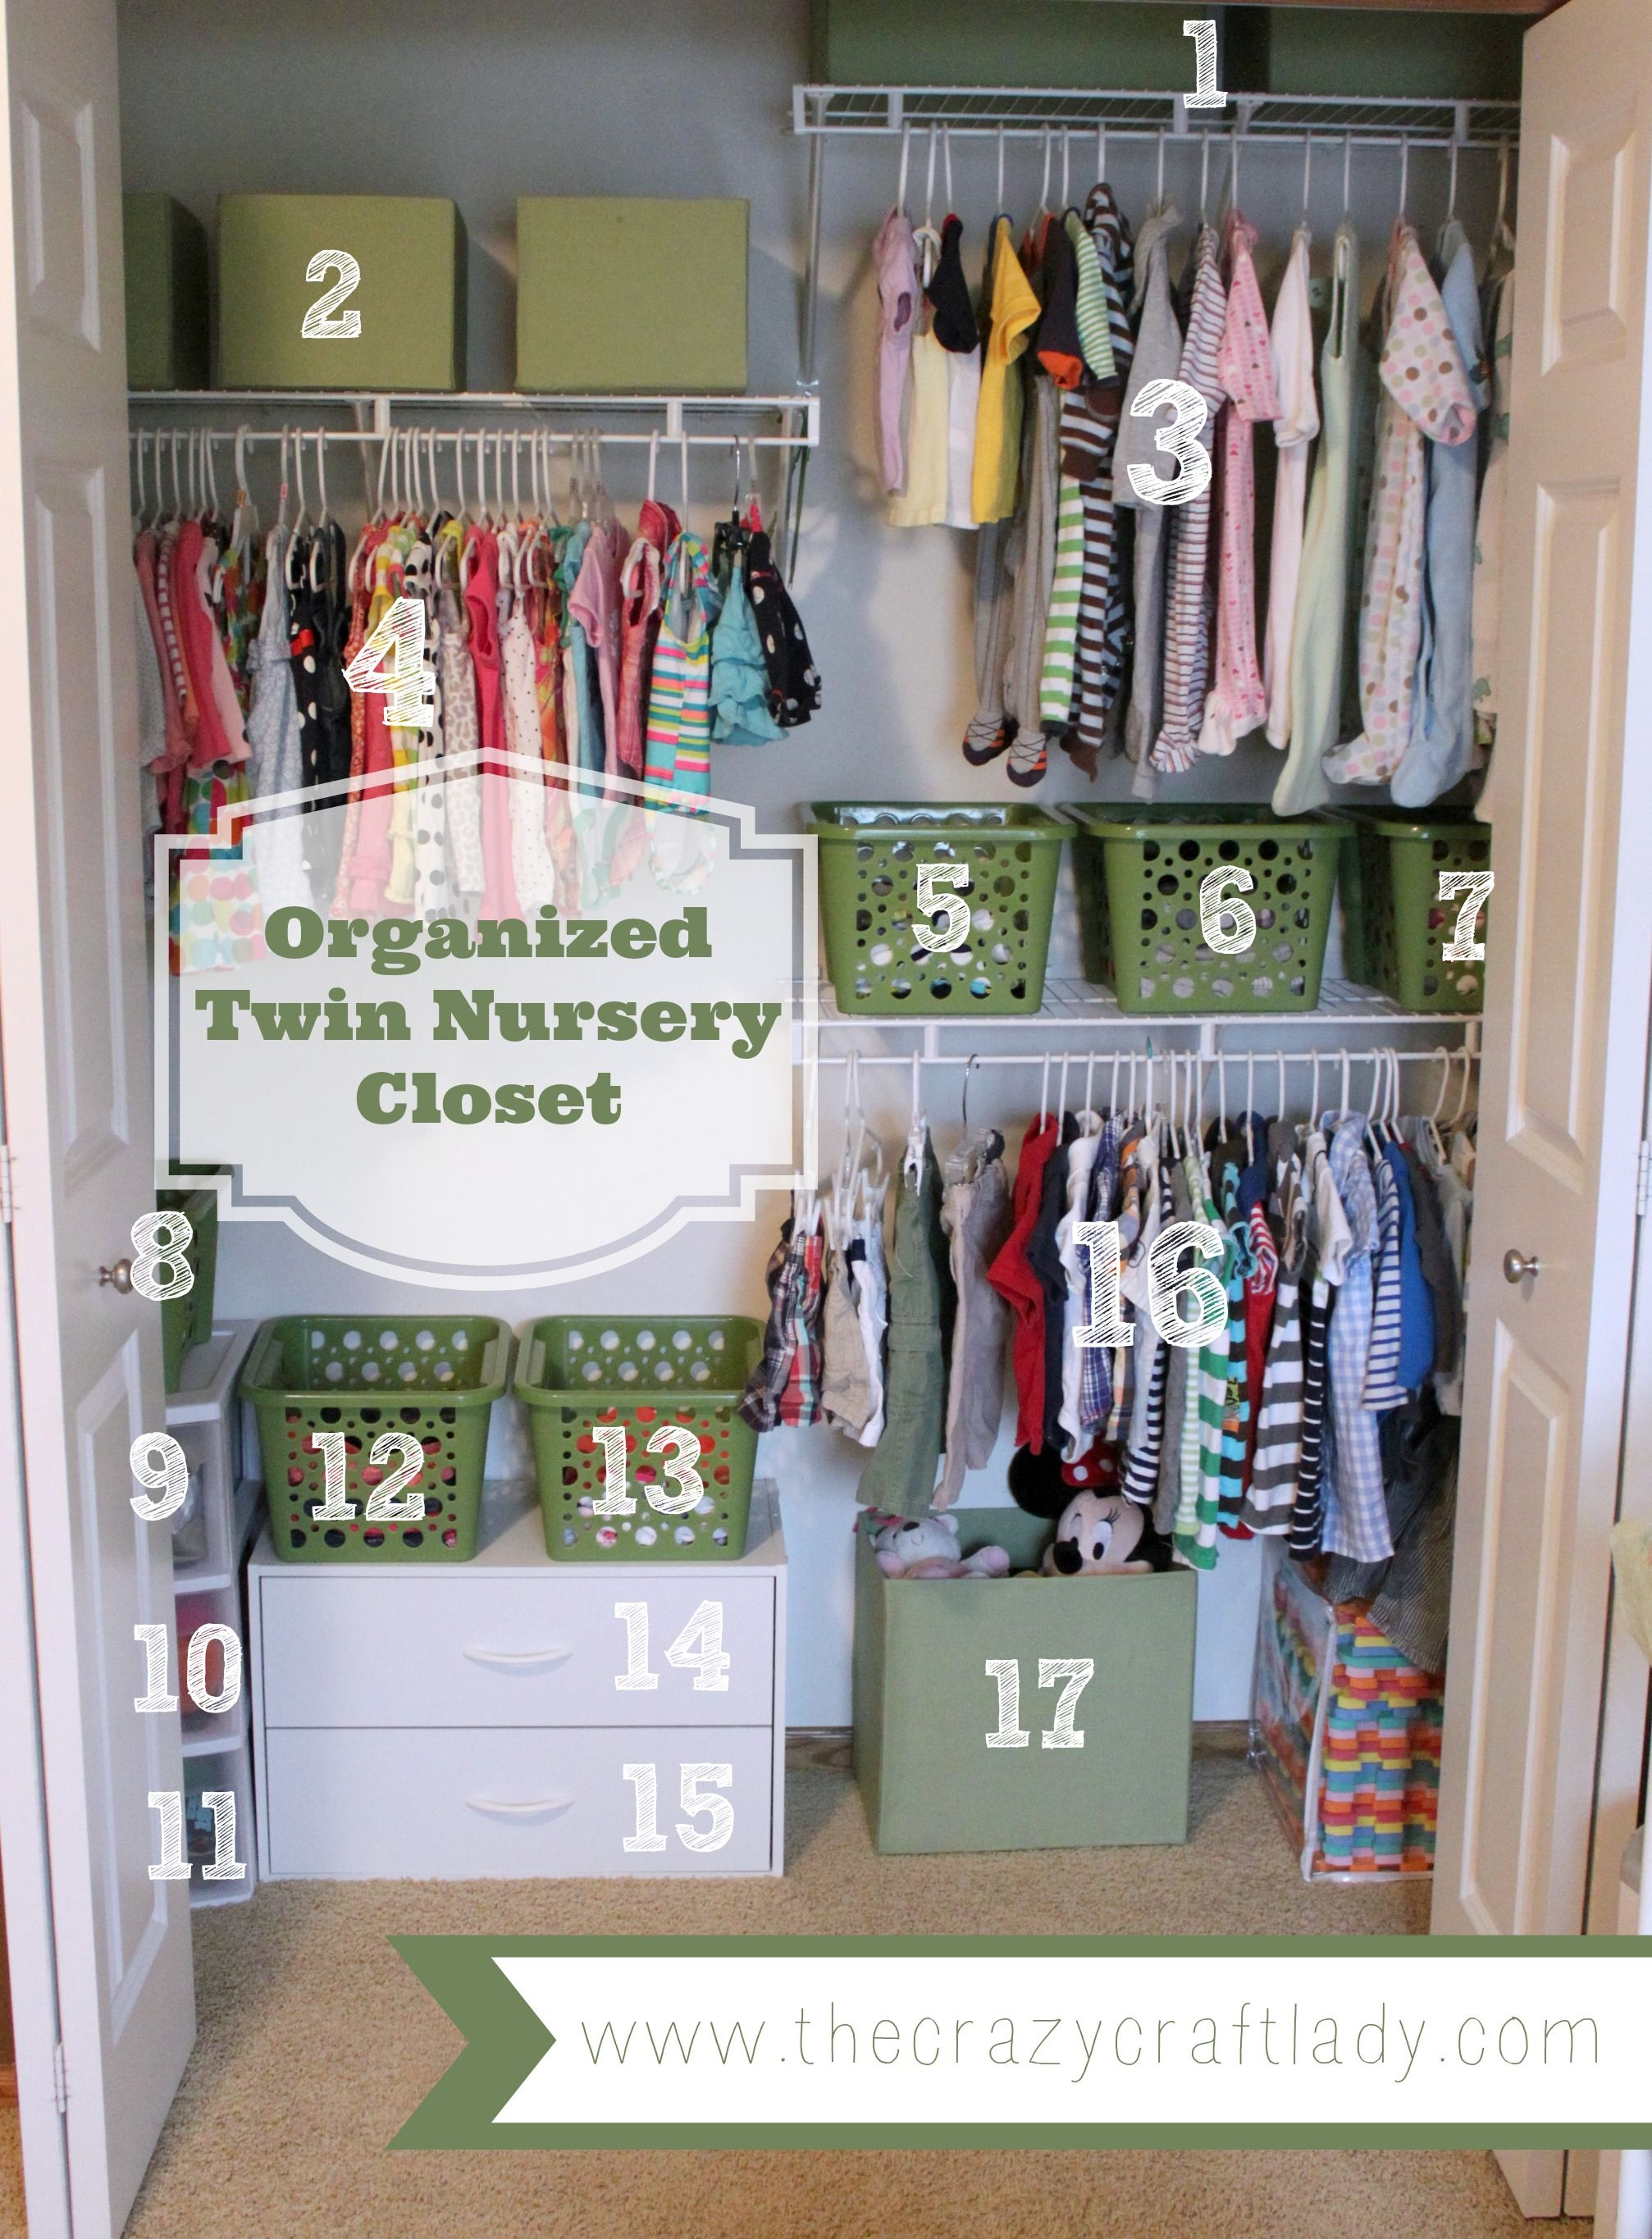 Exceptional Small Nursery Closet Organization Ideas Part - 13: Diaper Box Reuse: Just A Good Idea For Split Room!organized Twin Nursery  Closet - The Crazy Craft Lady